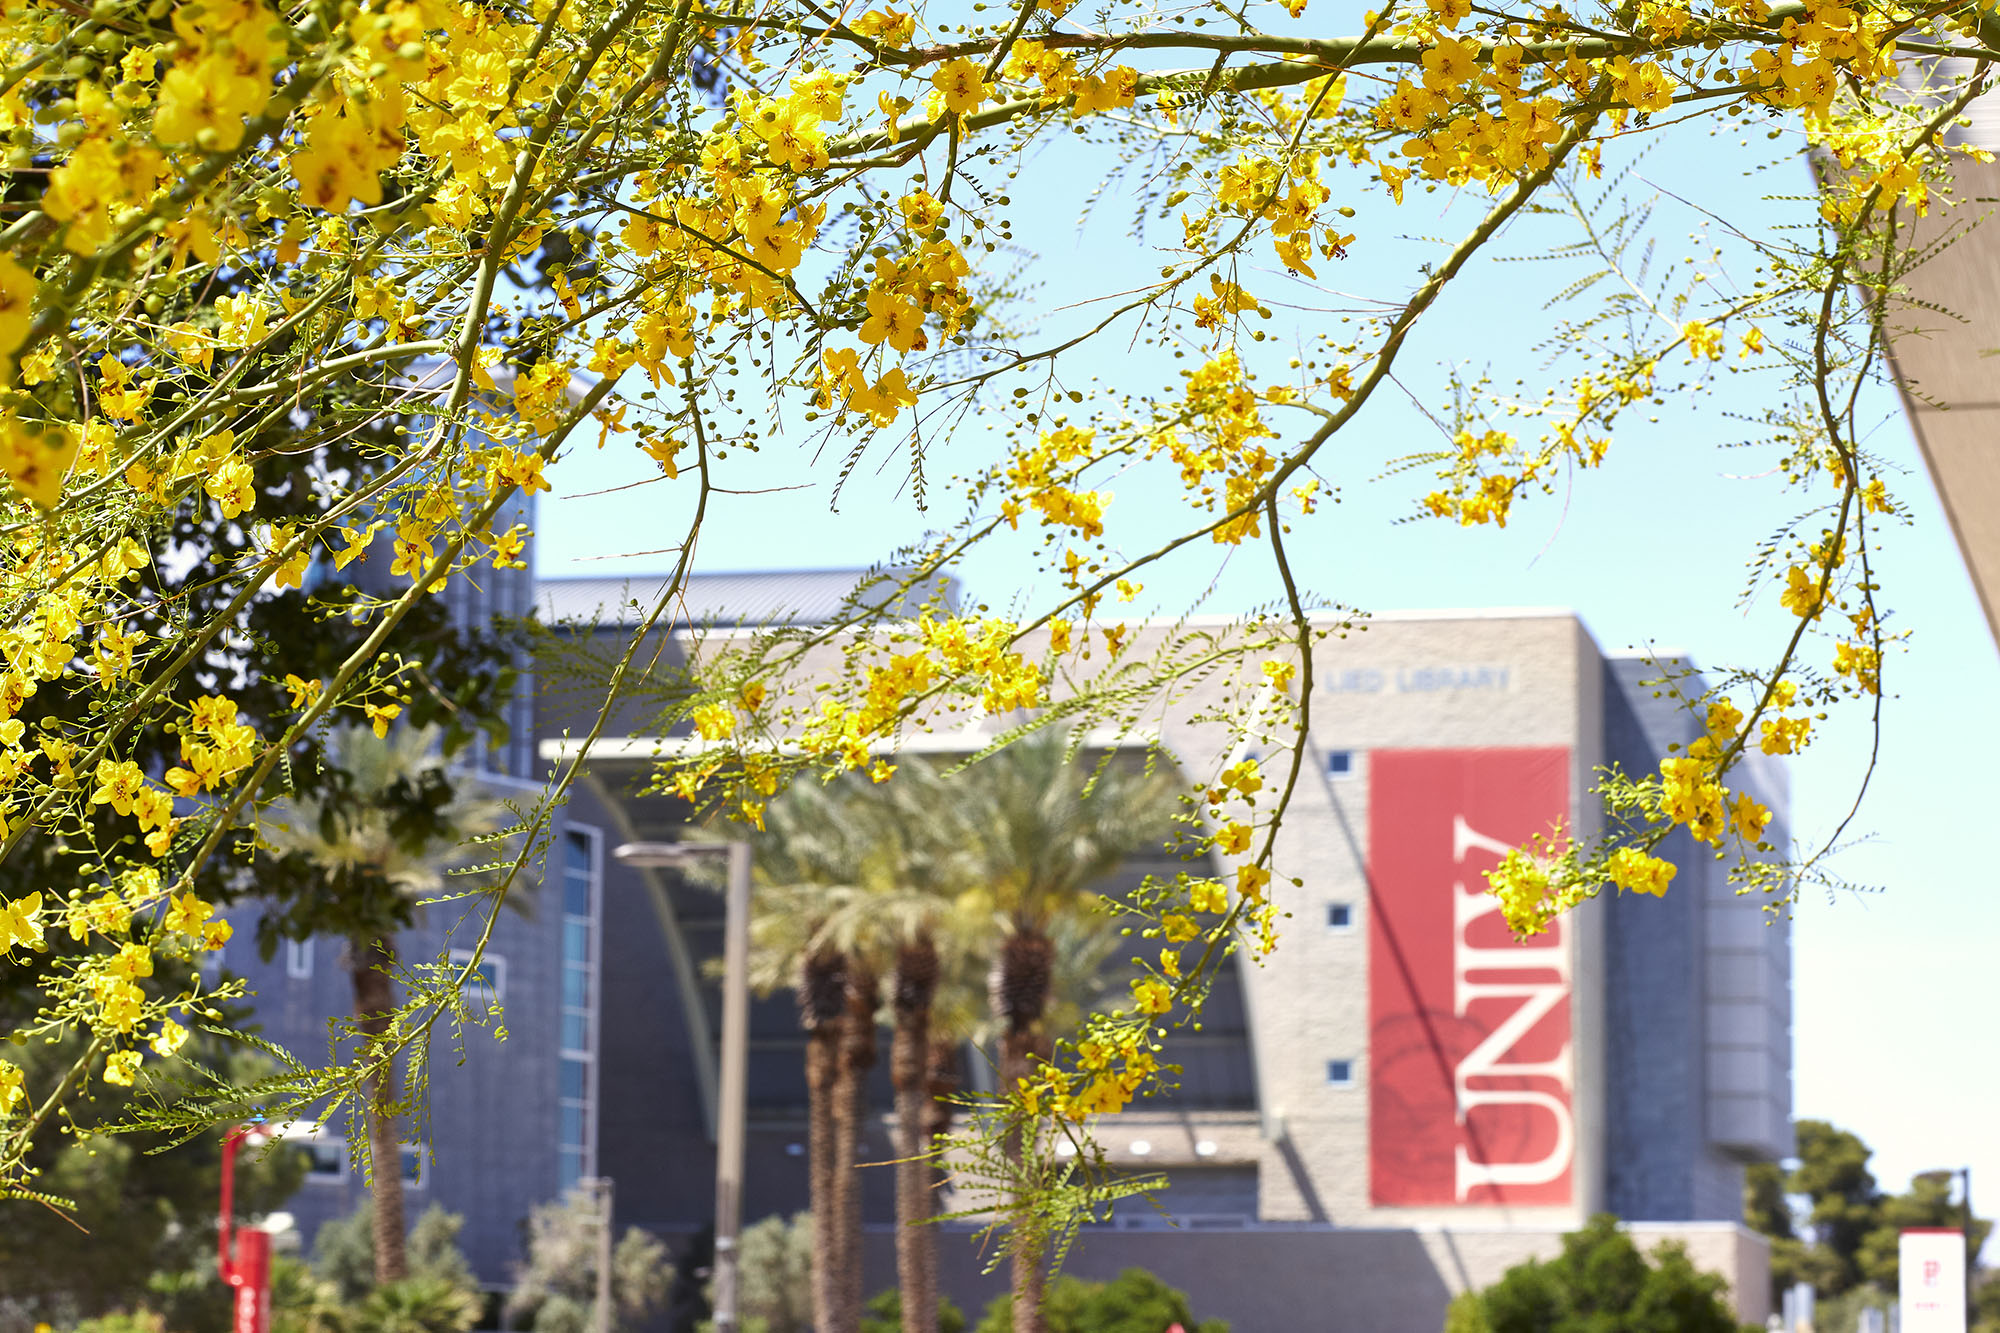 www.unlv.edu: From the President: Asian, Pacific Islander, and Middle Eastern Heritage Month